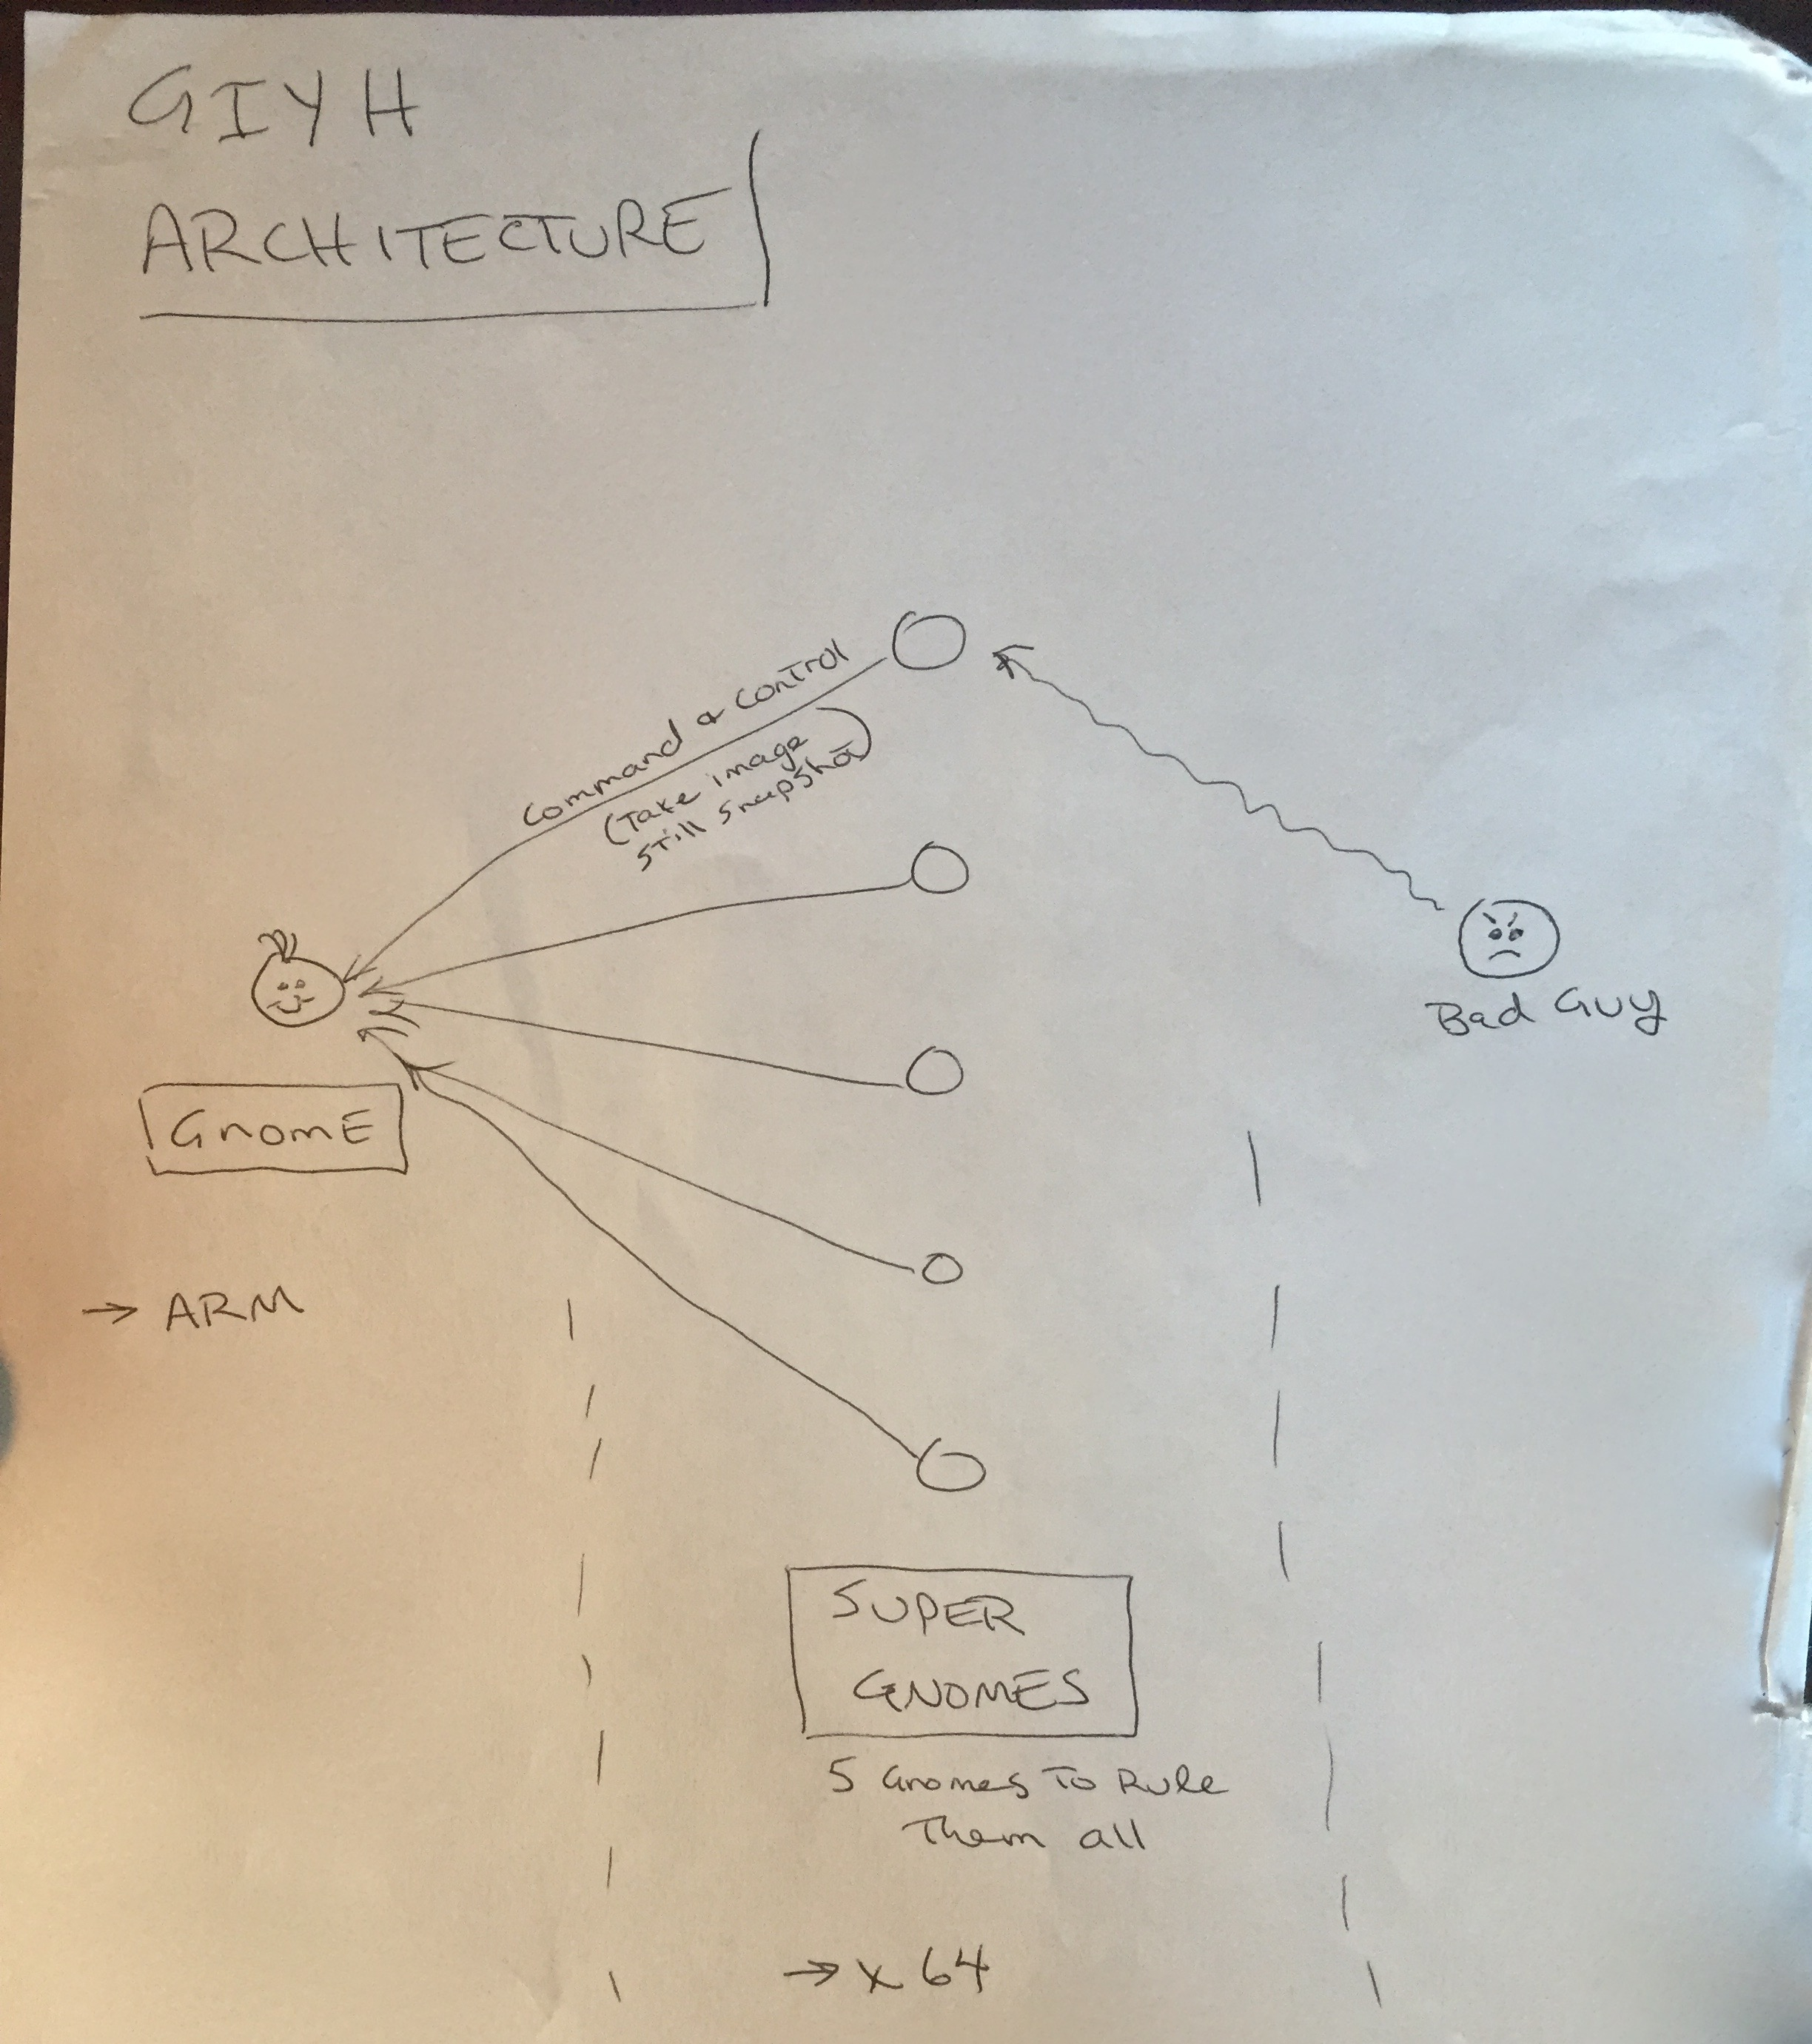 The GIYH architecture drawing extracted from the captured email